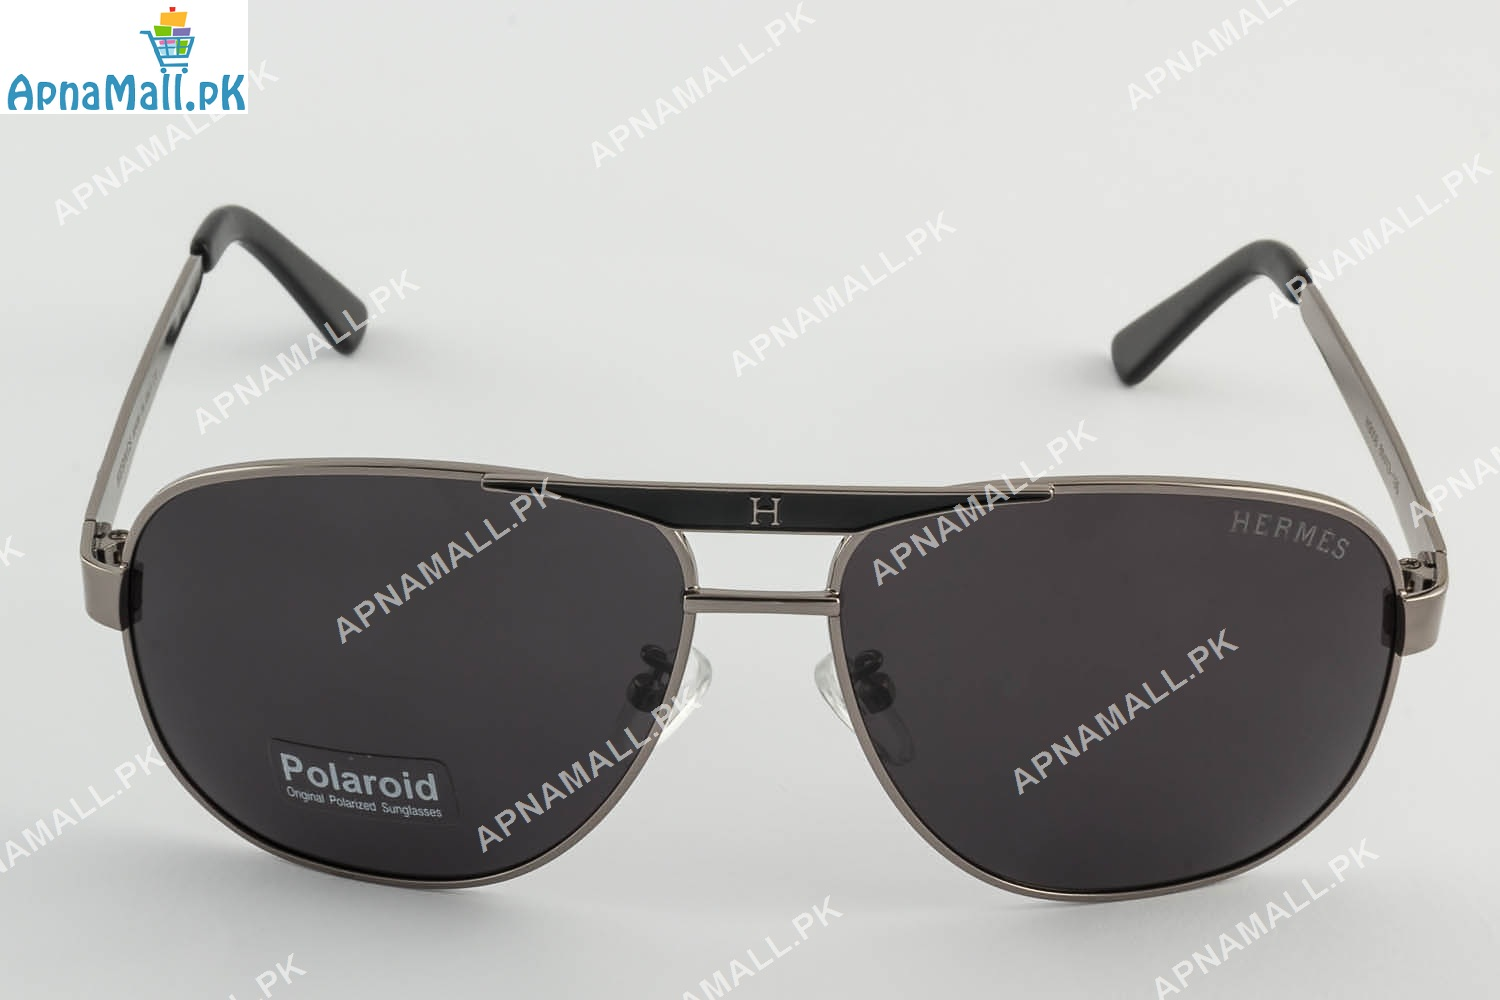 cac63e6ec92 Hermes Sunglasses With Models -  GolfClub